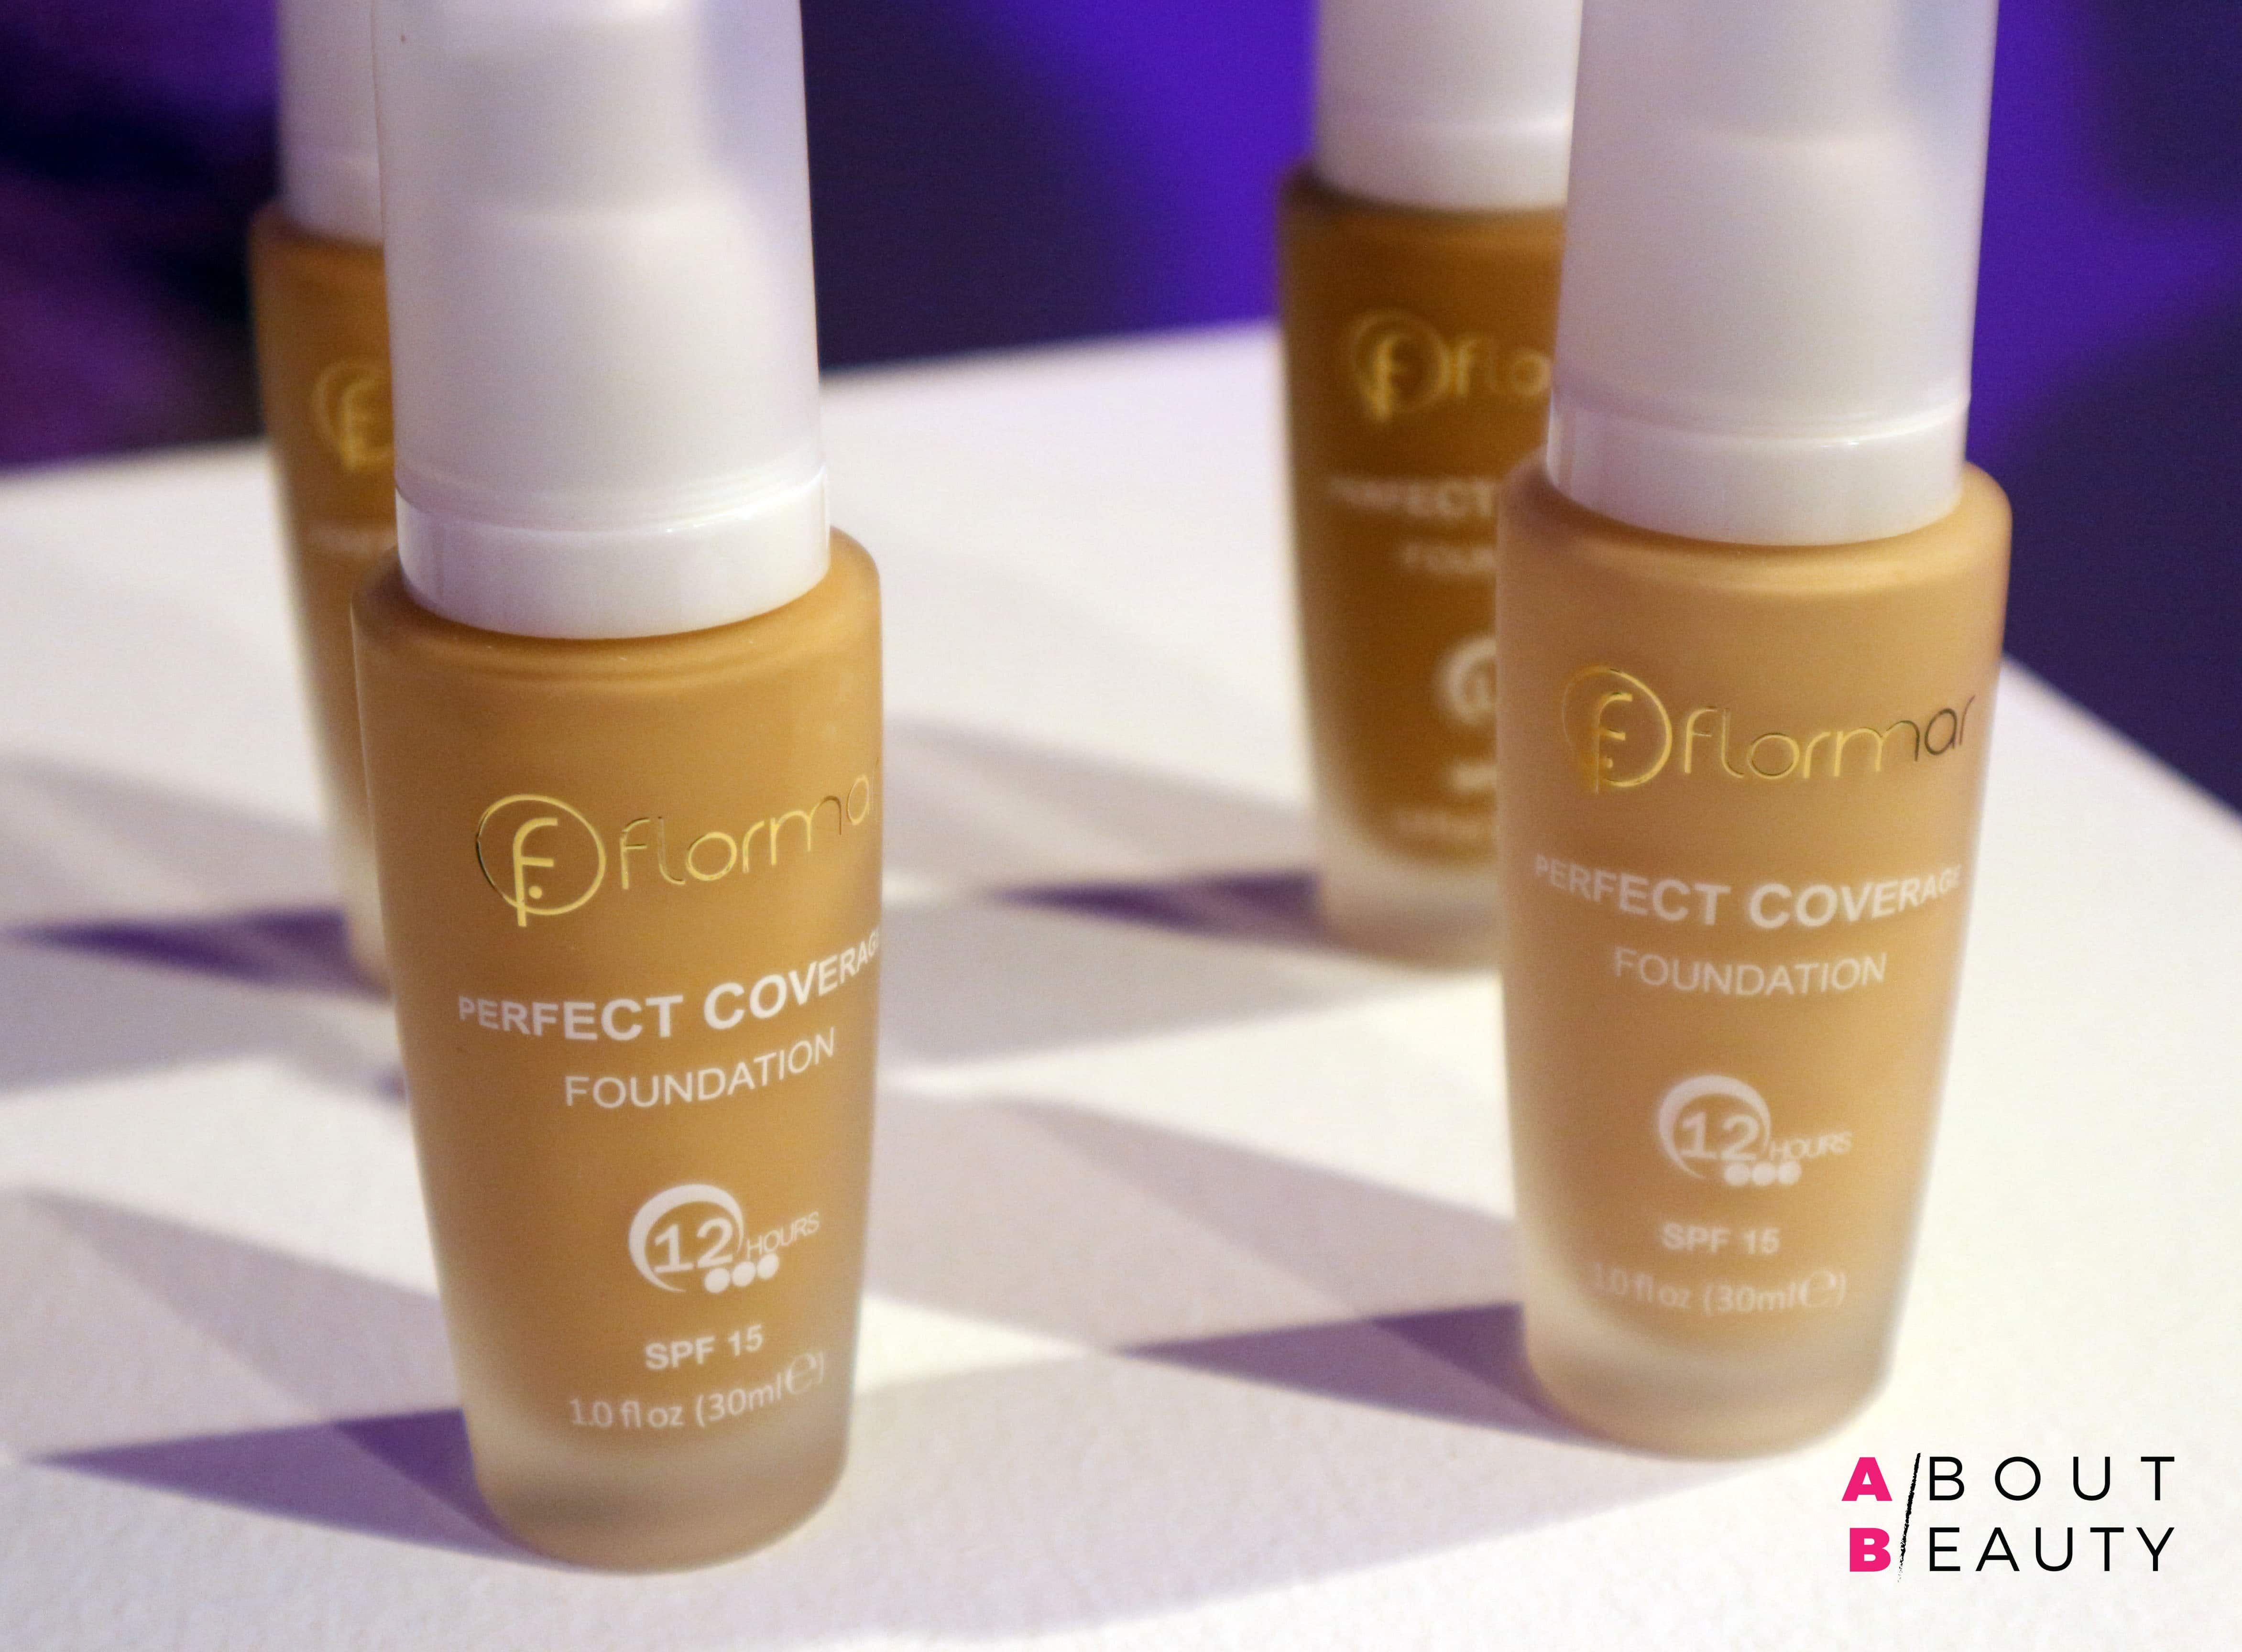 Flormar Professional Make-up, la linea di make-up completa dai prezzi accessibili - Info, recensione, prezzo, INCI - Fondotinta Perfect Coverage Foundation